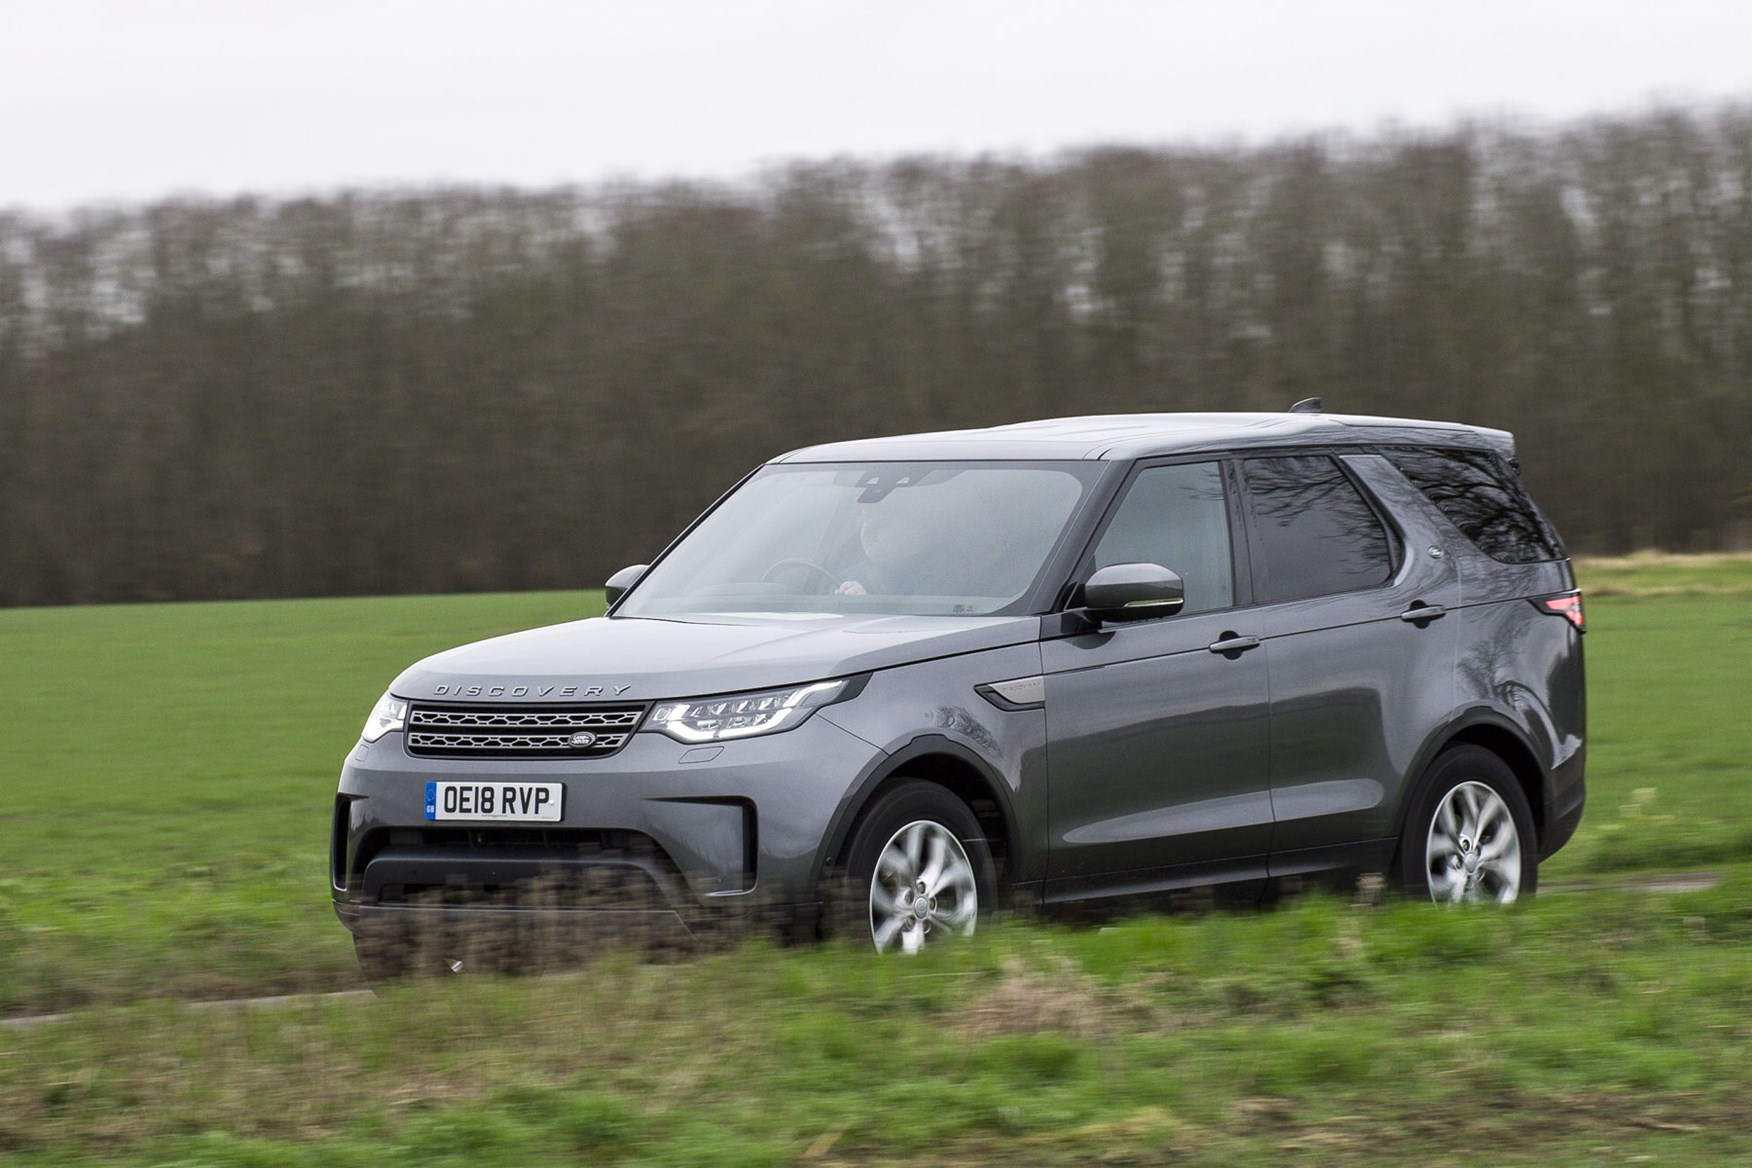 Land Rover Discovery Commercial review (2020), front side view, driving